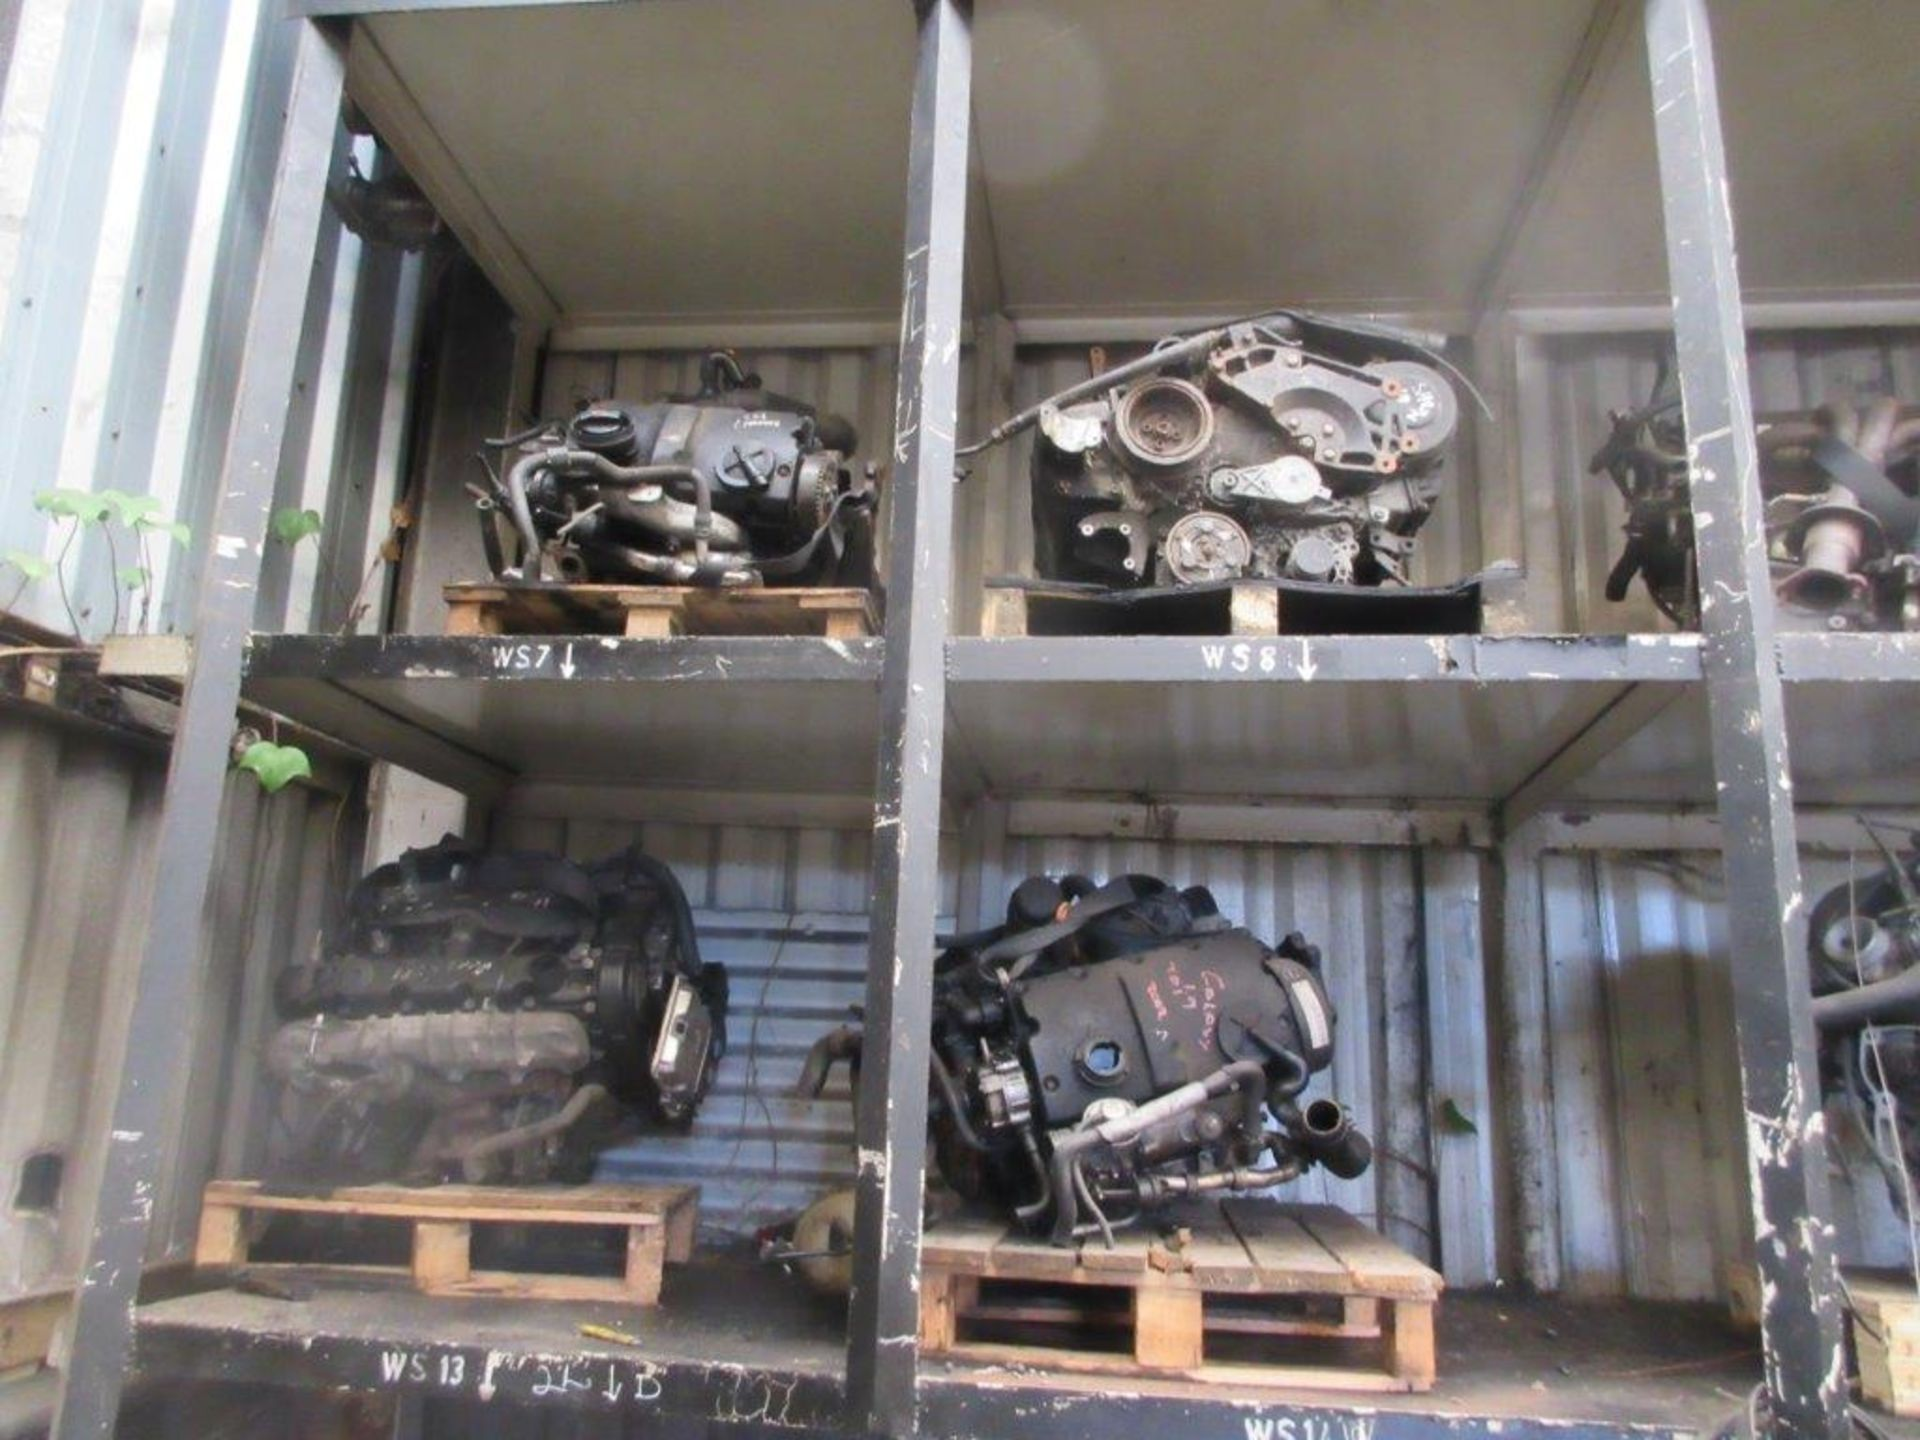 Lot 45 - 20 assorted engines including unknown, Galaxy 1.9 TDi 2002, unknown, unknown, unknown, Fiesta, Mk